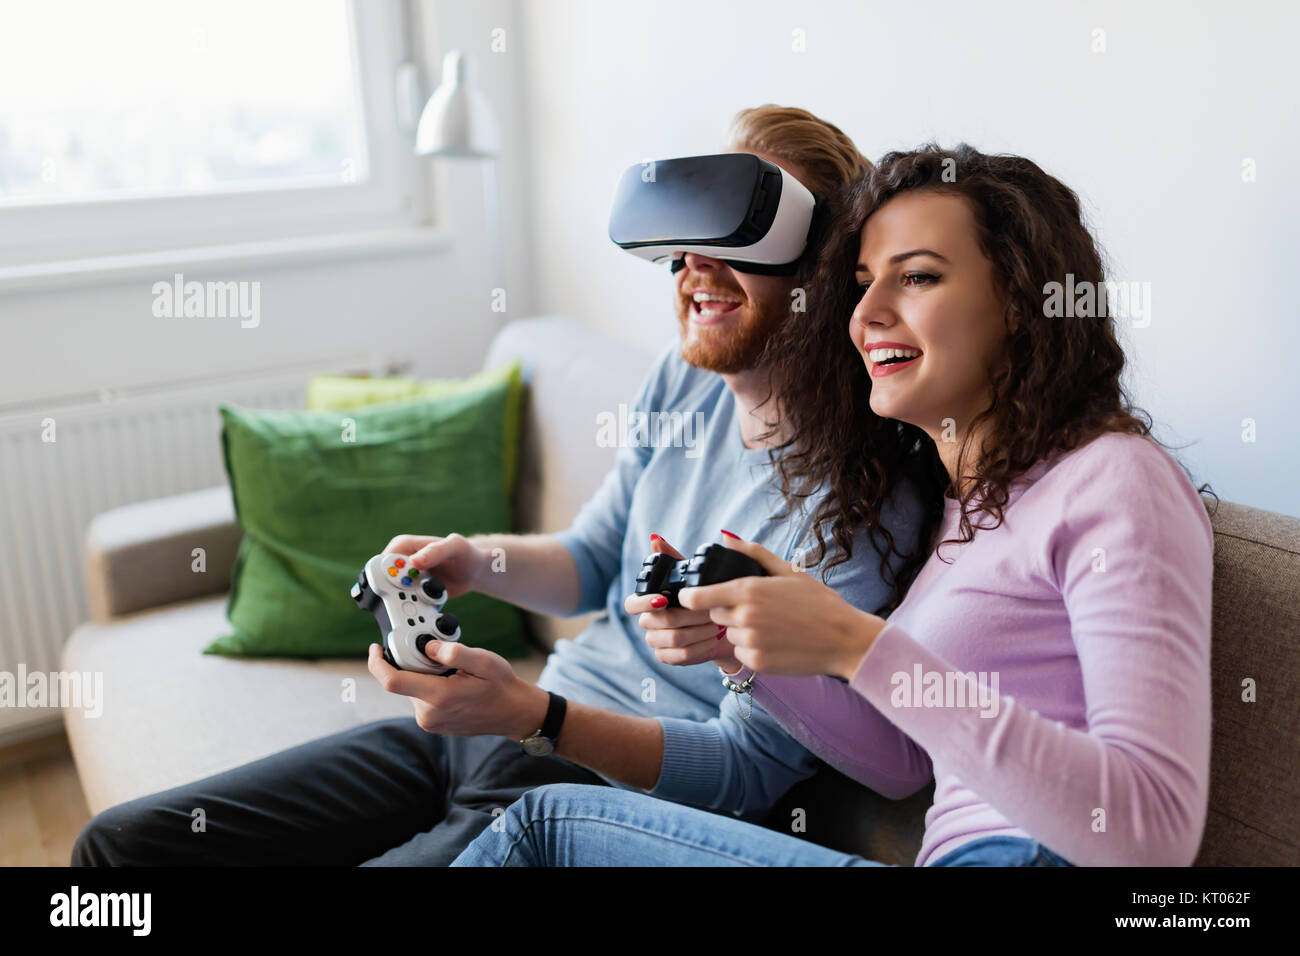 f4717a523624 Happy young couple playing video games with virtual reality headsets -  Stock Image